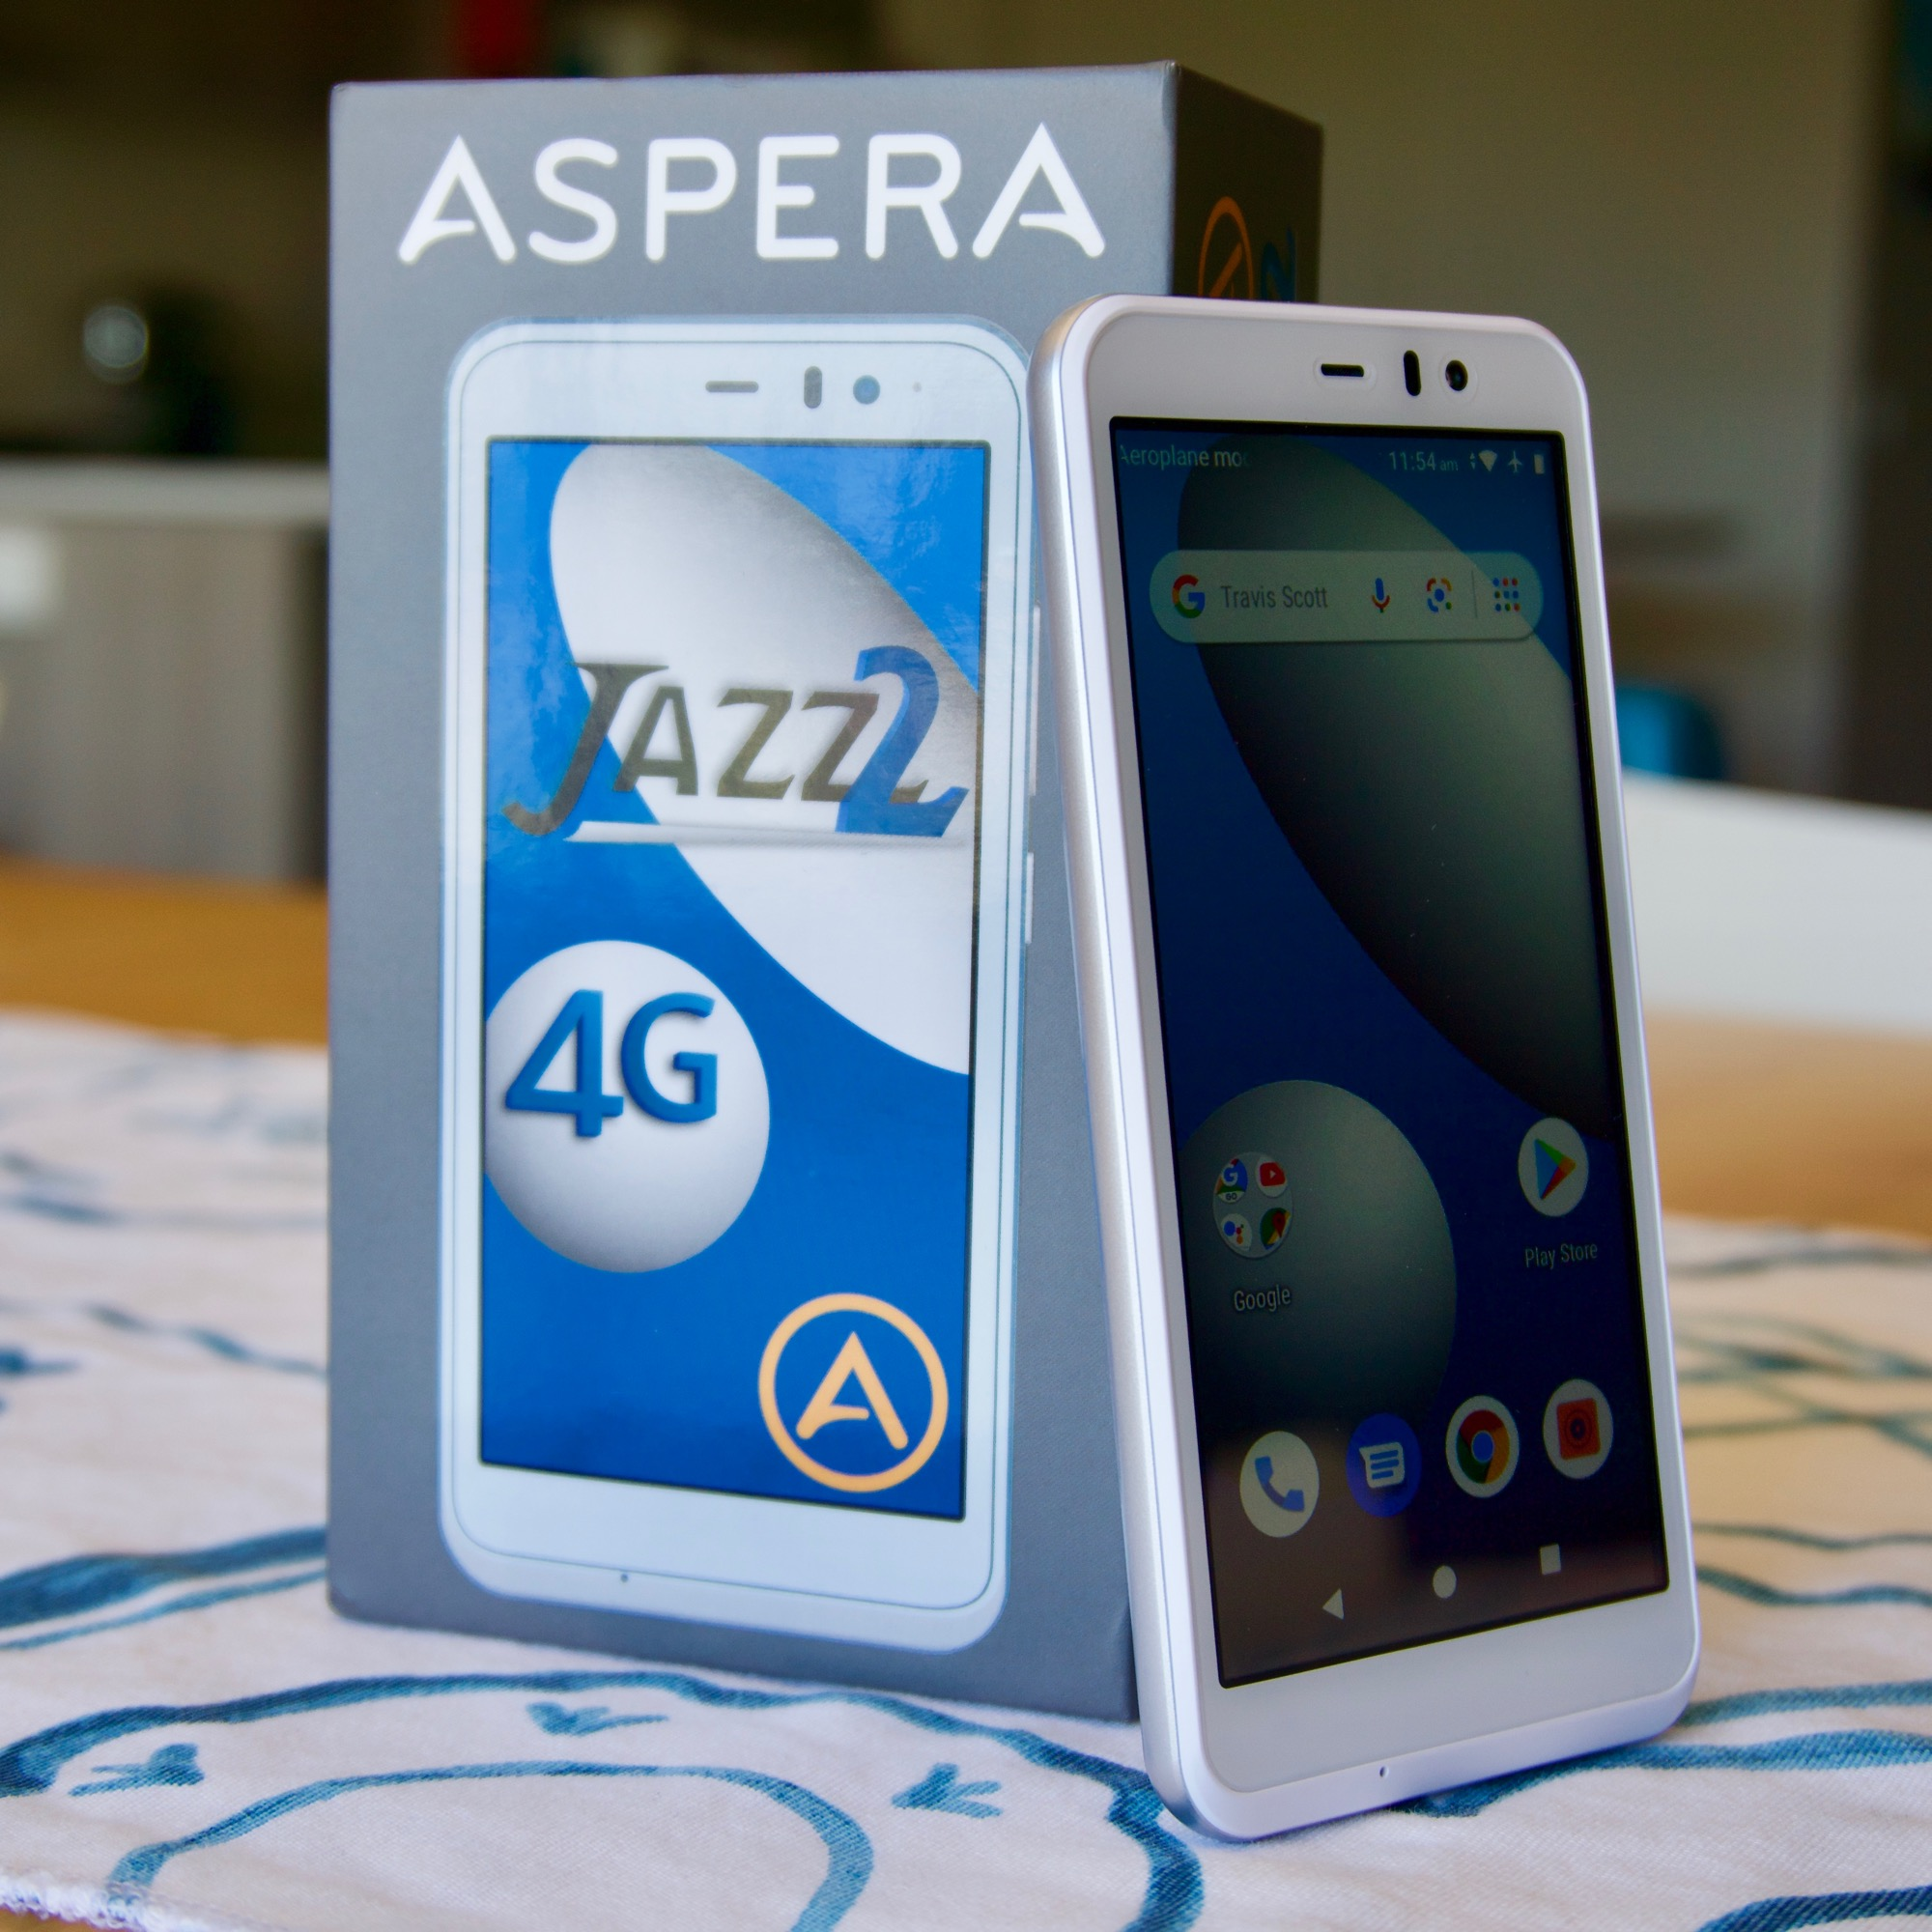 Review: Aspera Jazz 2 smartphone